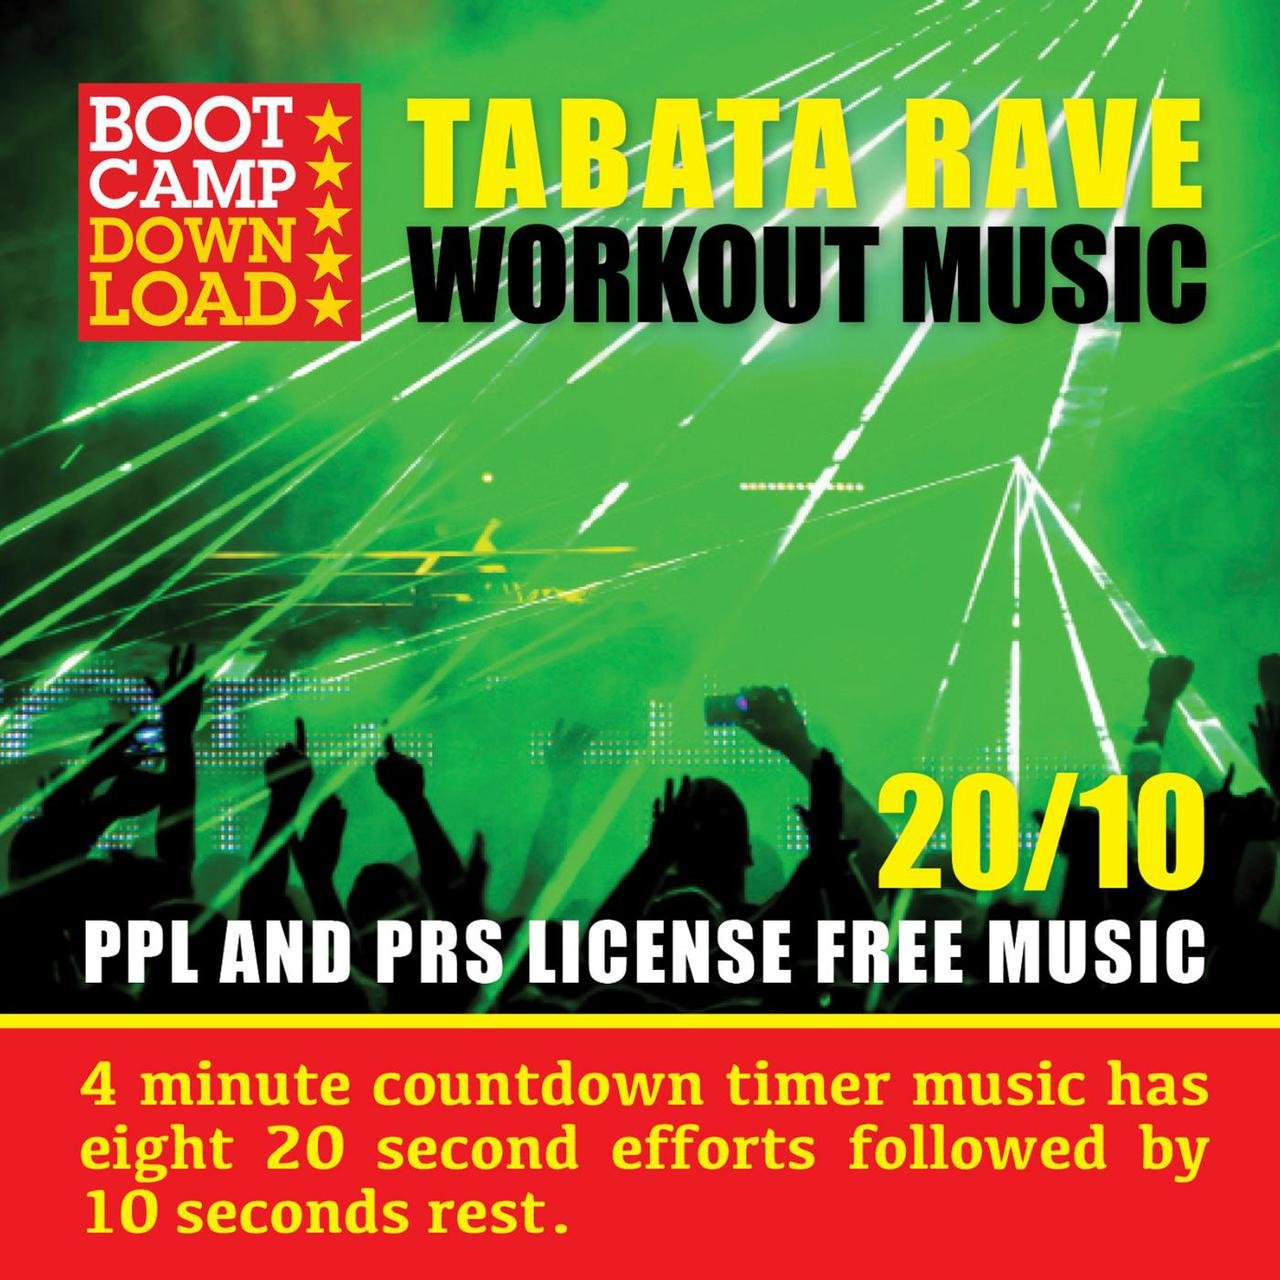 Tidal Listen To Tabata Countdown Timer With Fitness Rave Workout Workouts Timers For Hiit And Circuit Training Are Included Music 20 10 On